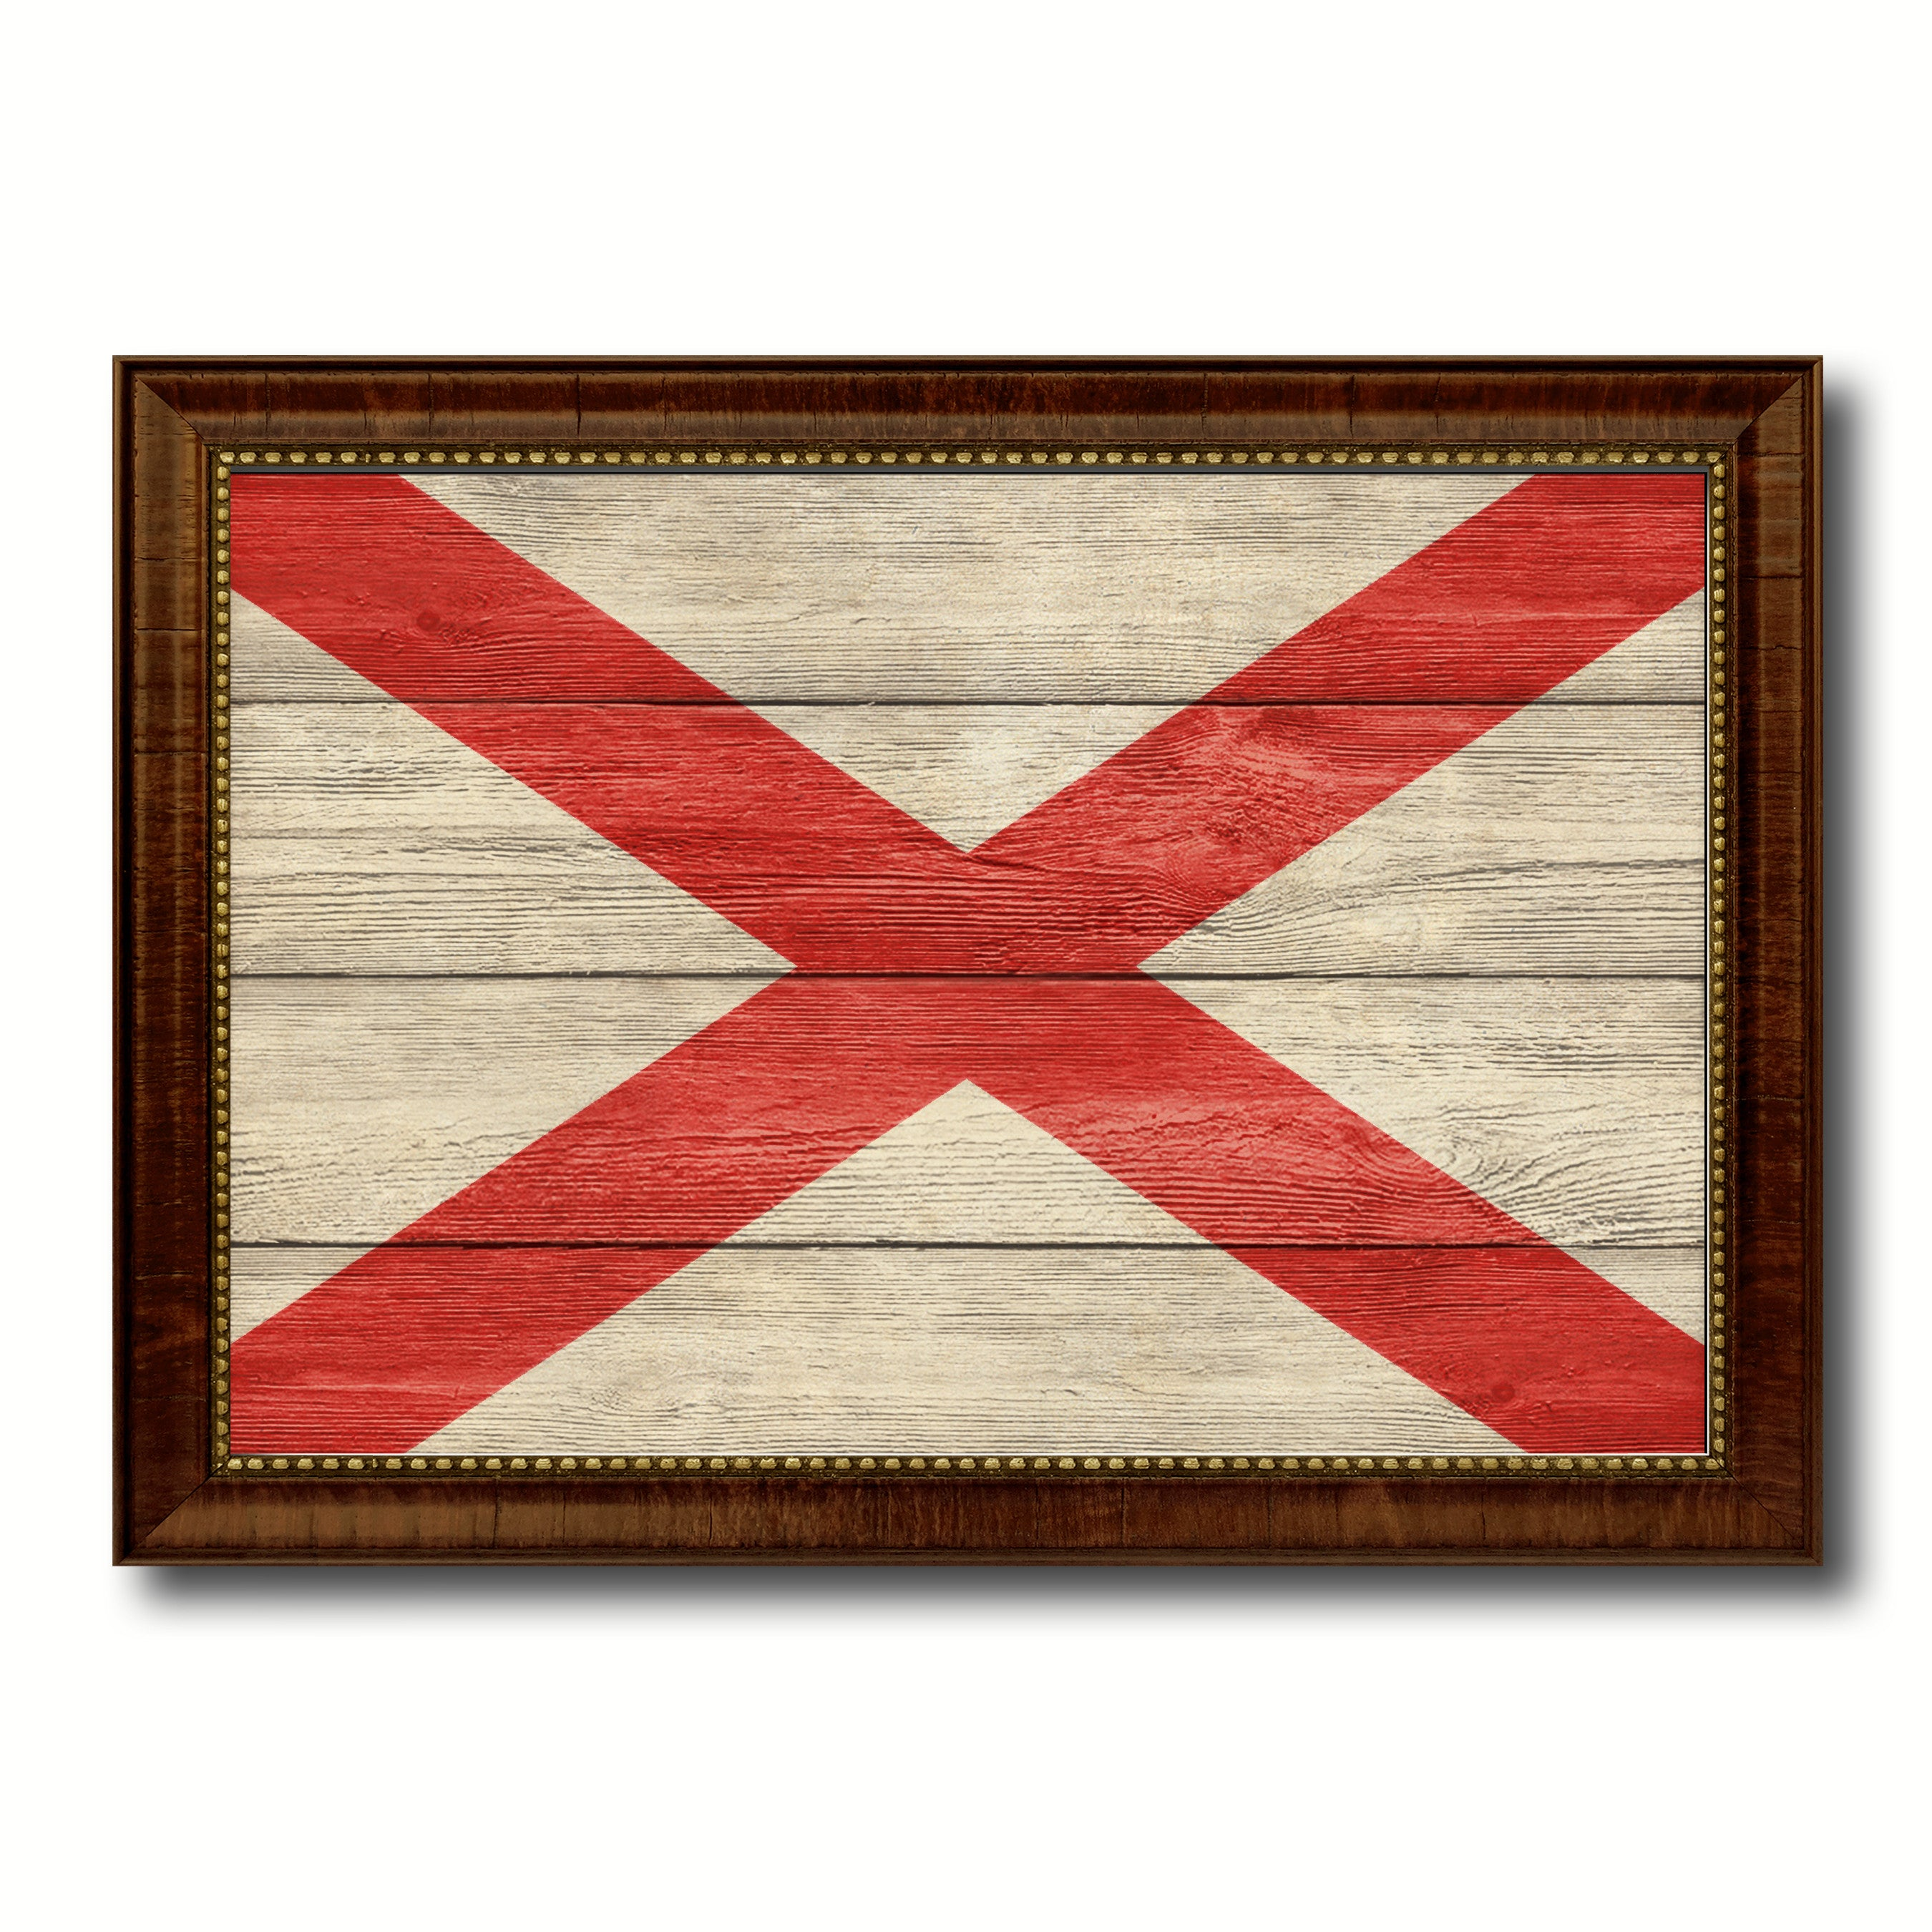 Alabama State Flag Texture Canvas Print with Brown Picture Frame Gifts Home Decor Wall Art Collectible Decoration